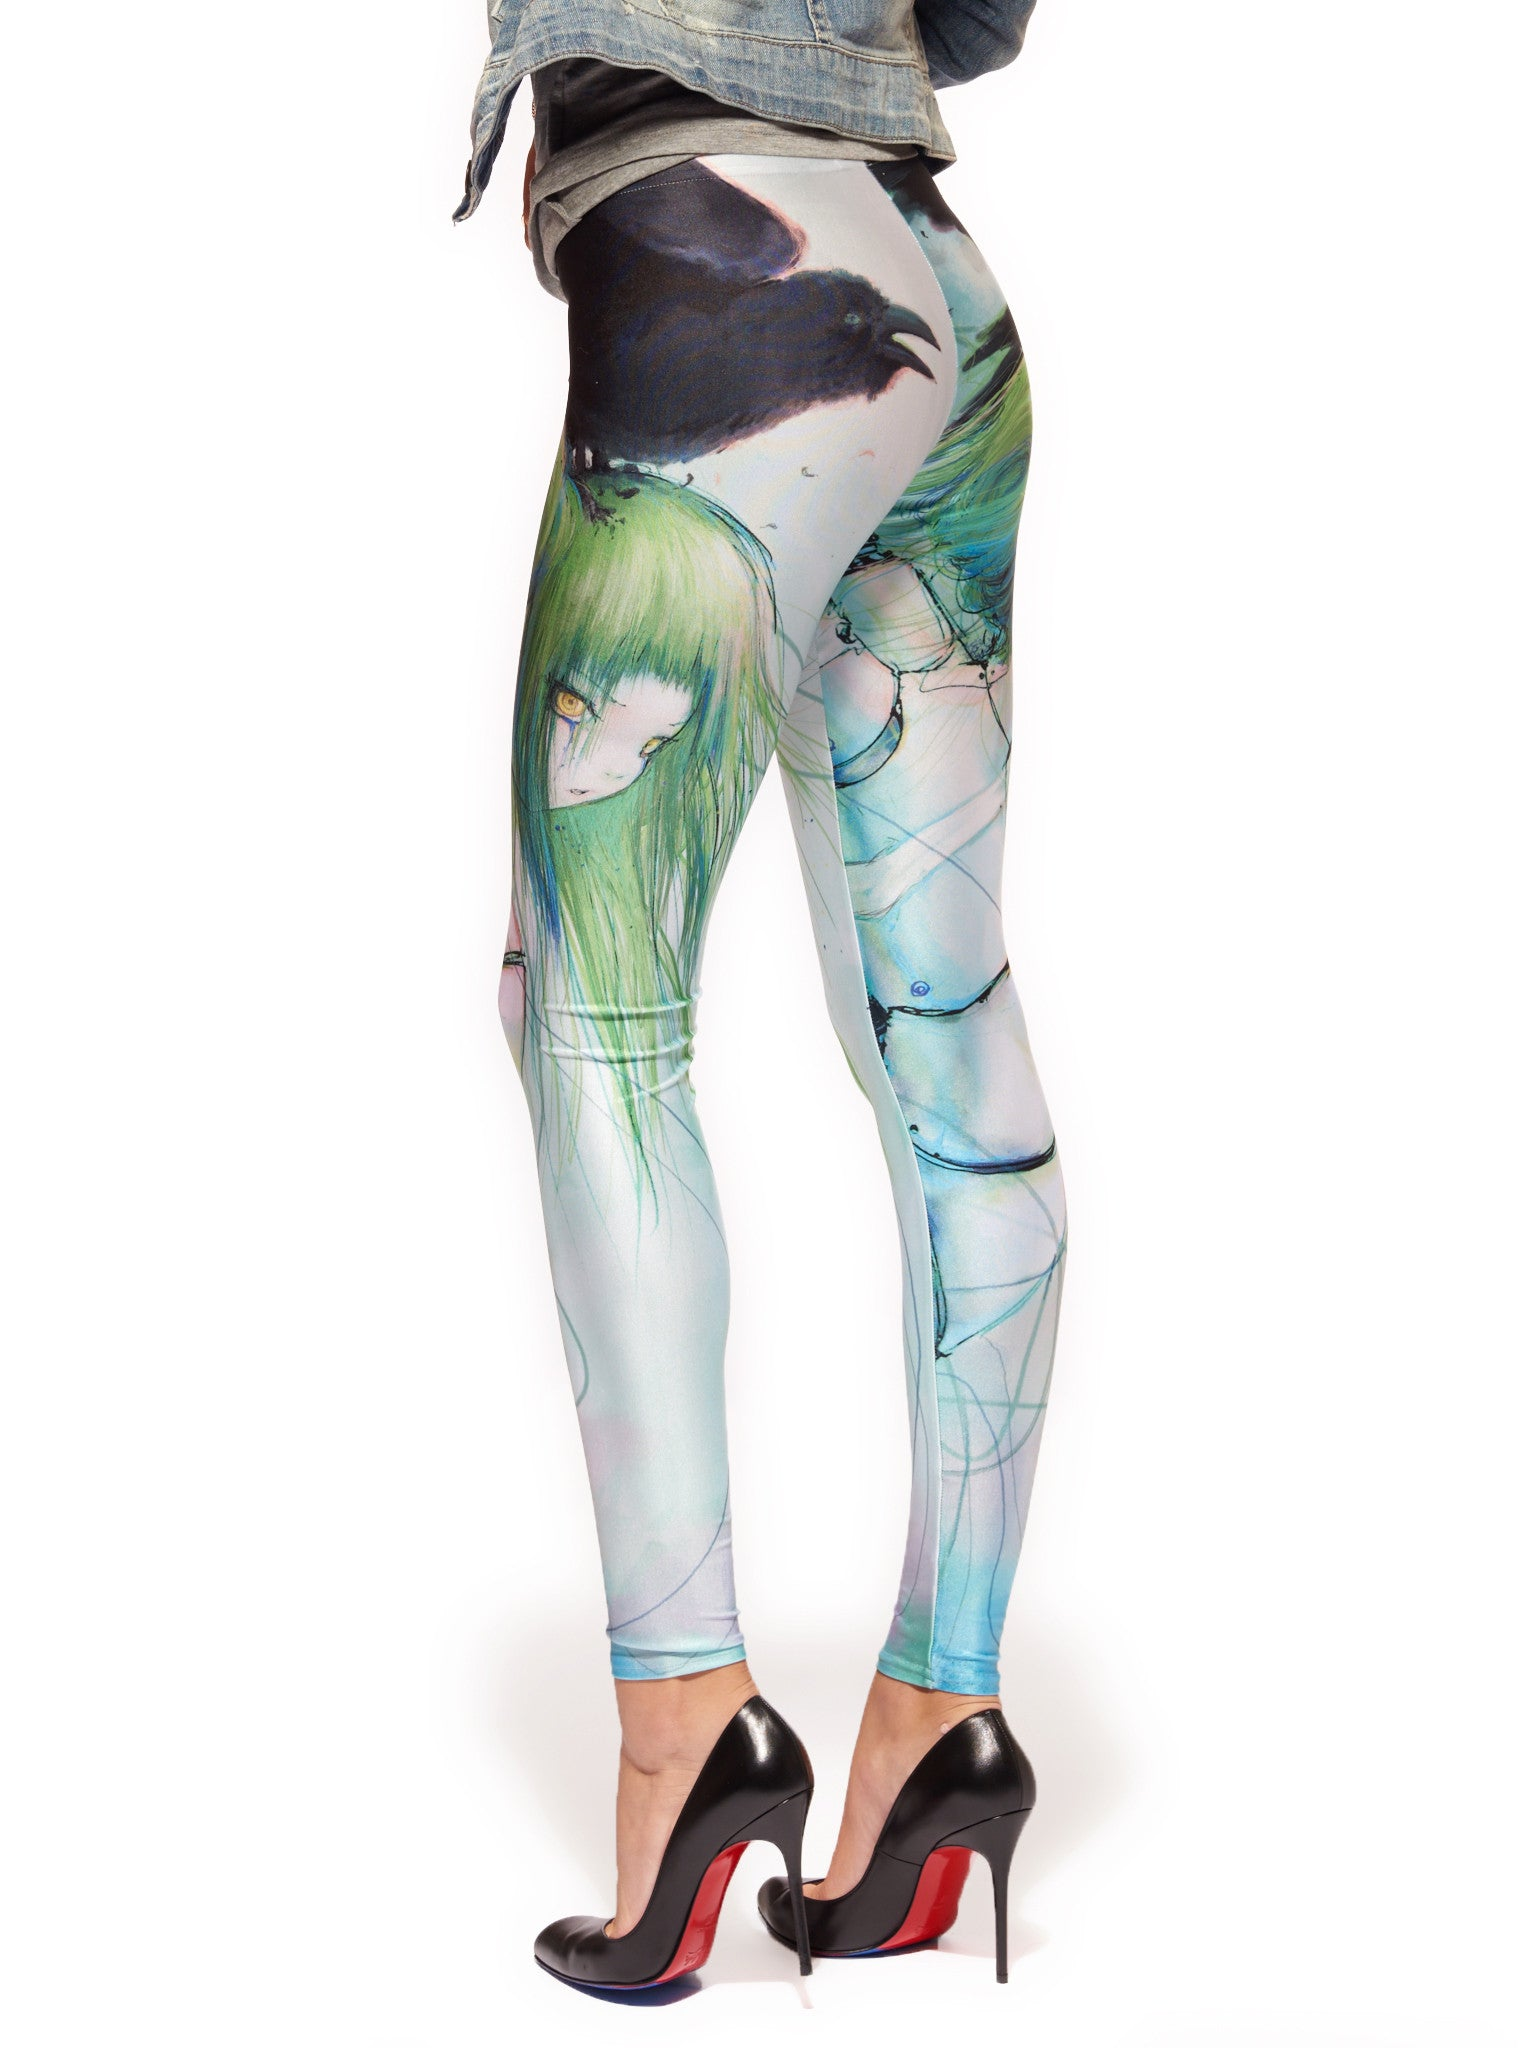 Disassembled Tears Queen West Leggings - Nuvango  - 4